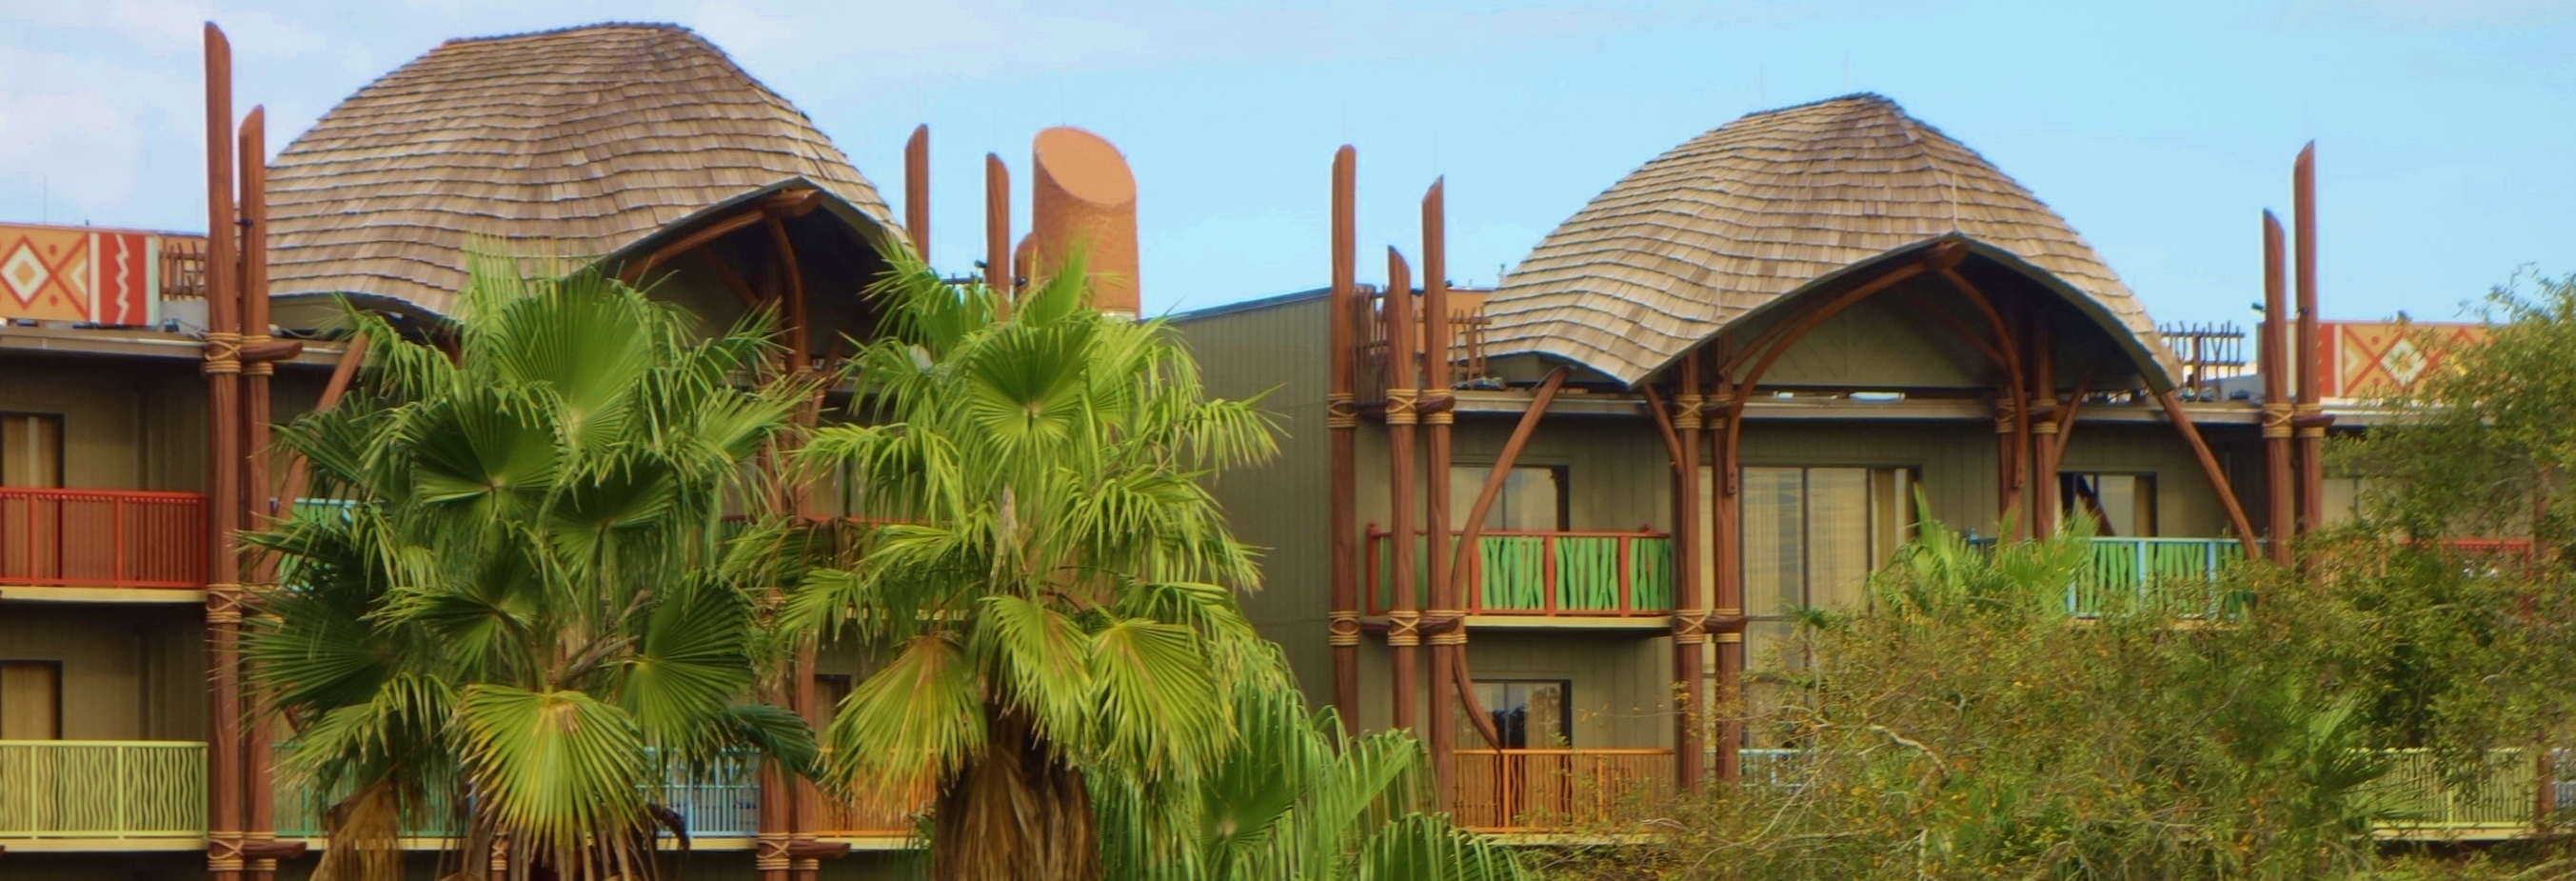 Review: Kidani Village At Disney's Animal Kingdom Villas